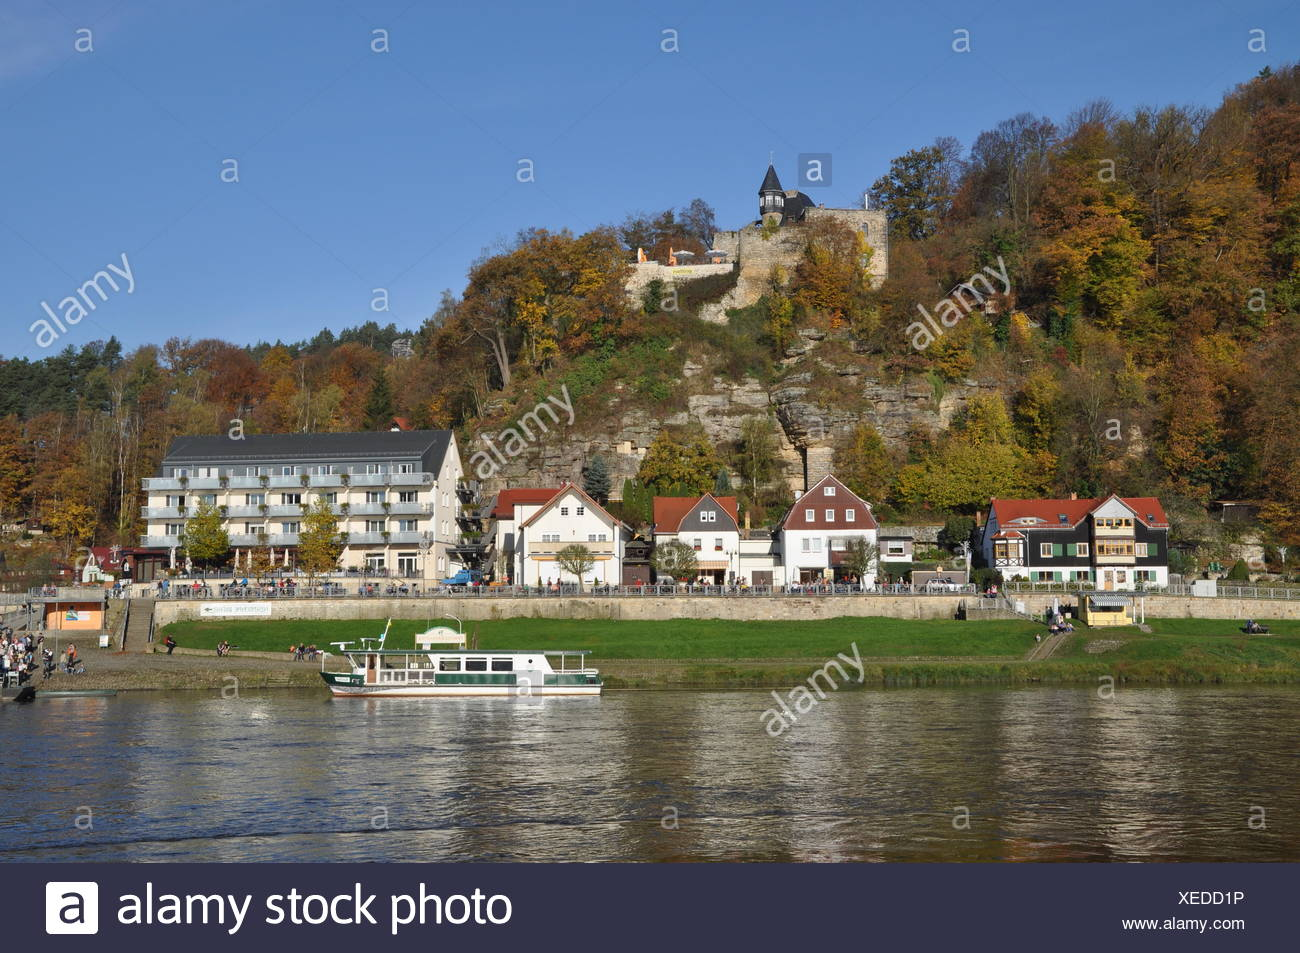 Rathen and Altrathen at Elbe - Stock Image